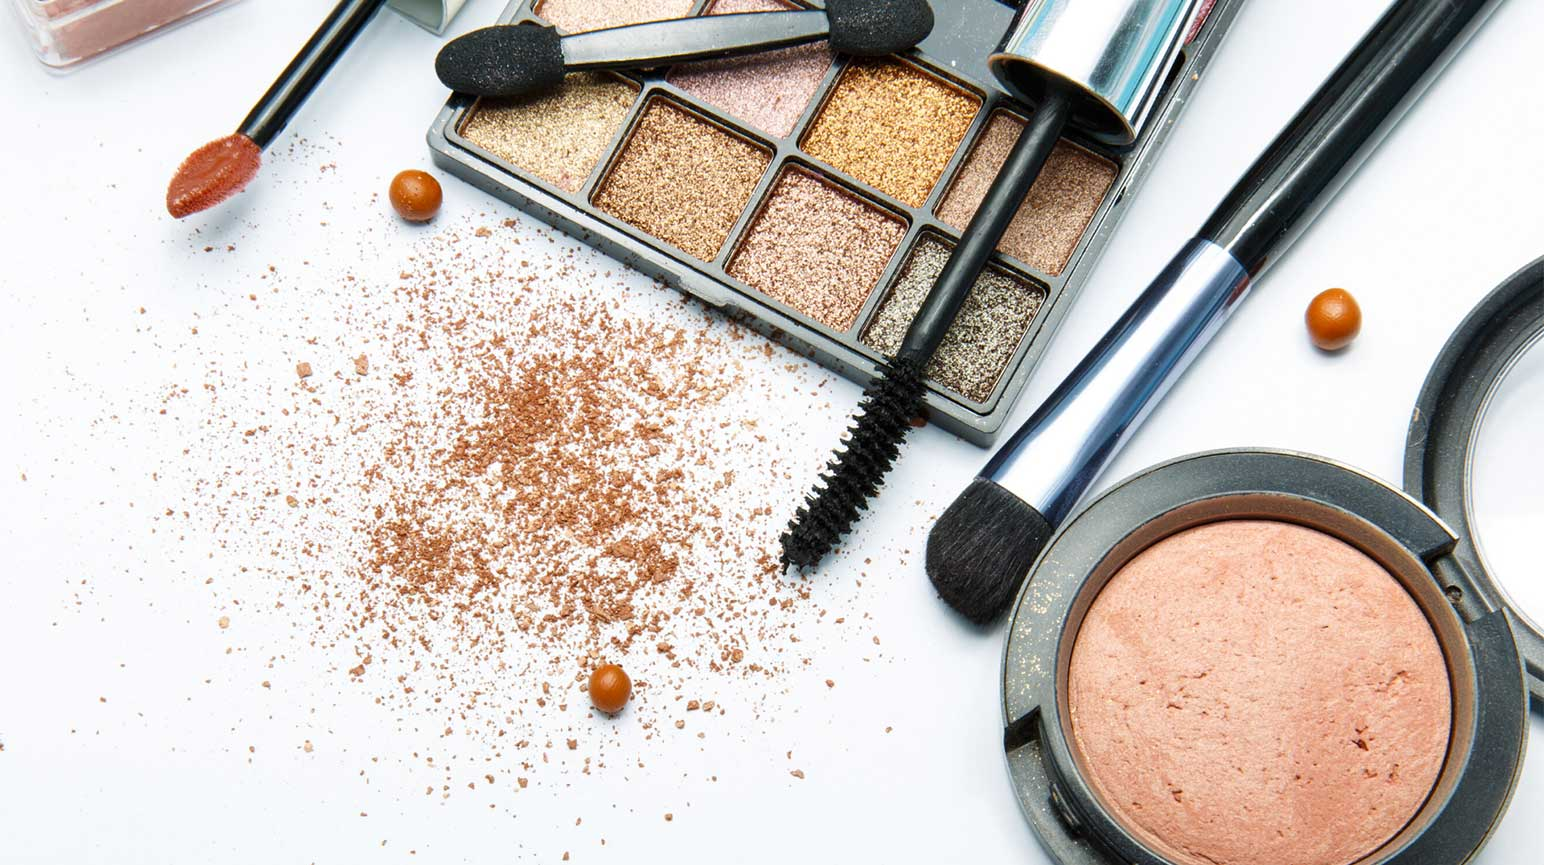 Eye Makeup Issues: The Dangers You Need To Know About